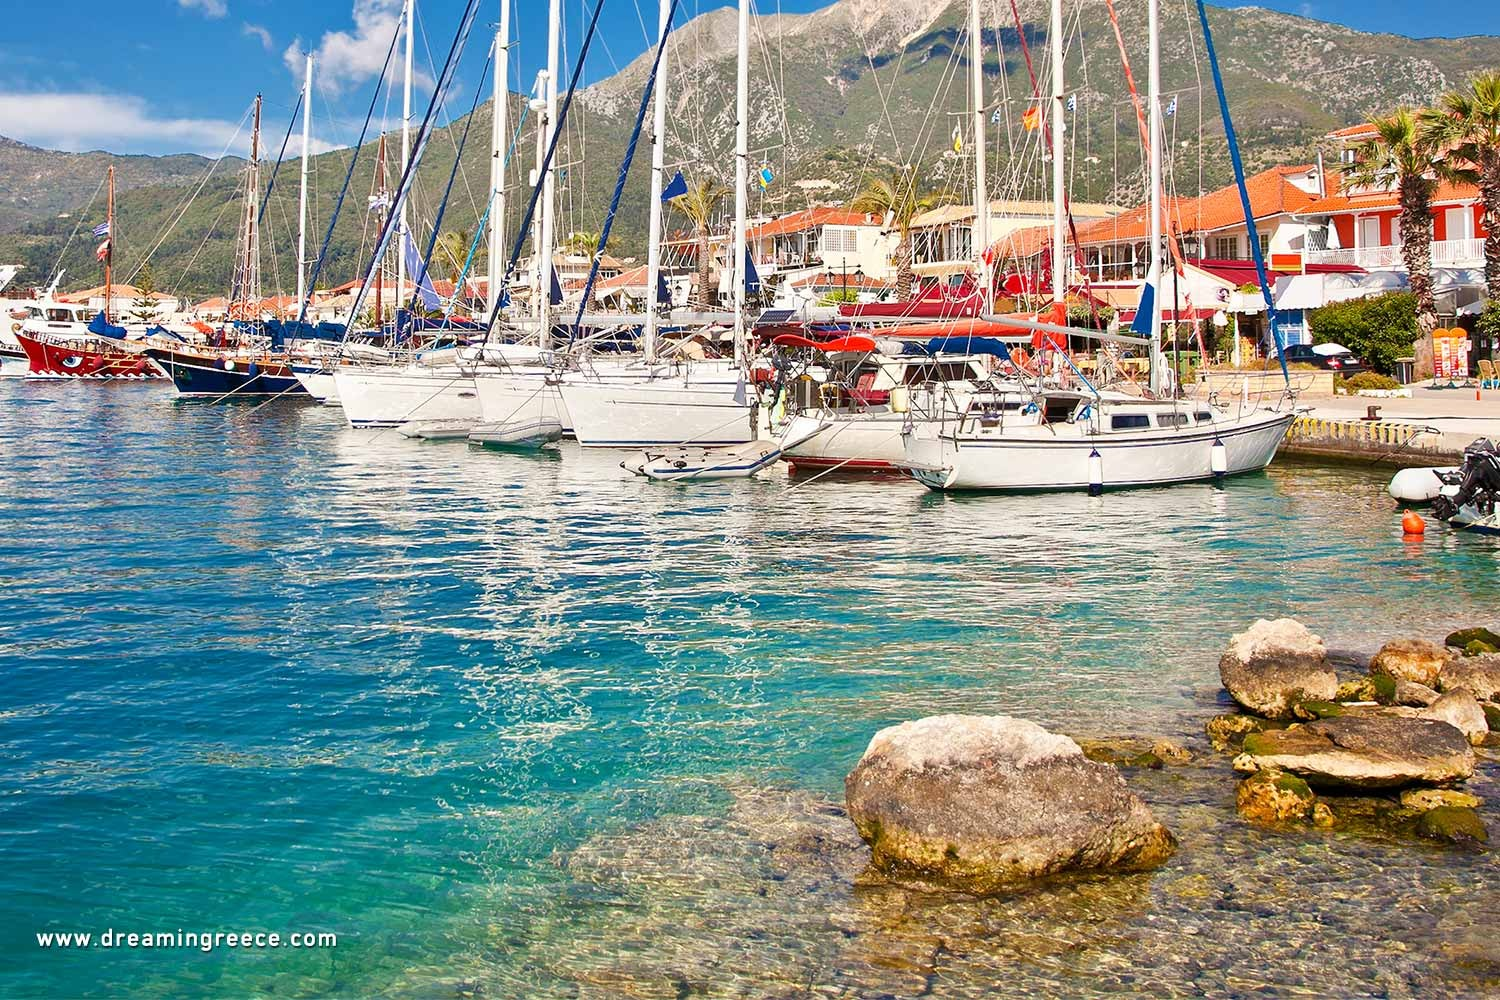 Holidays in Lefkada Meganisi island Vacations Greece Ionian Islands